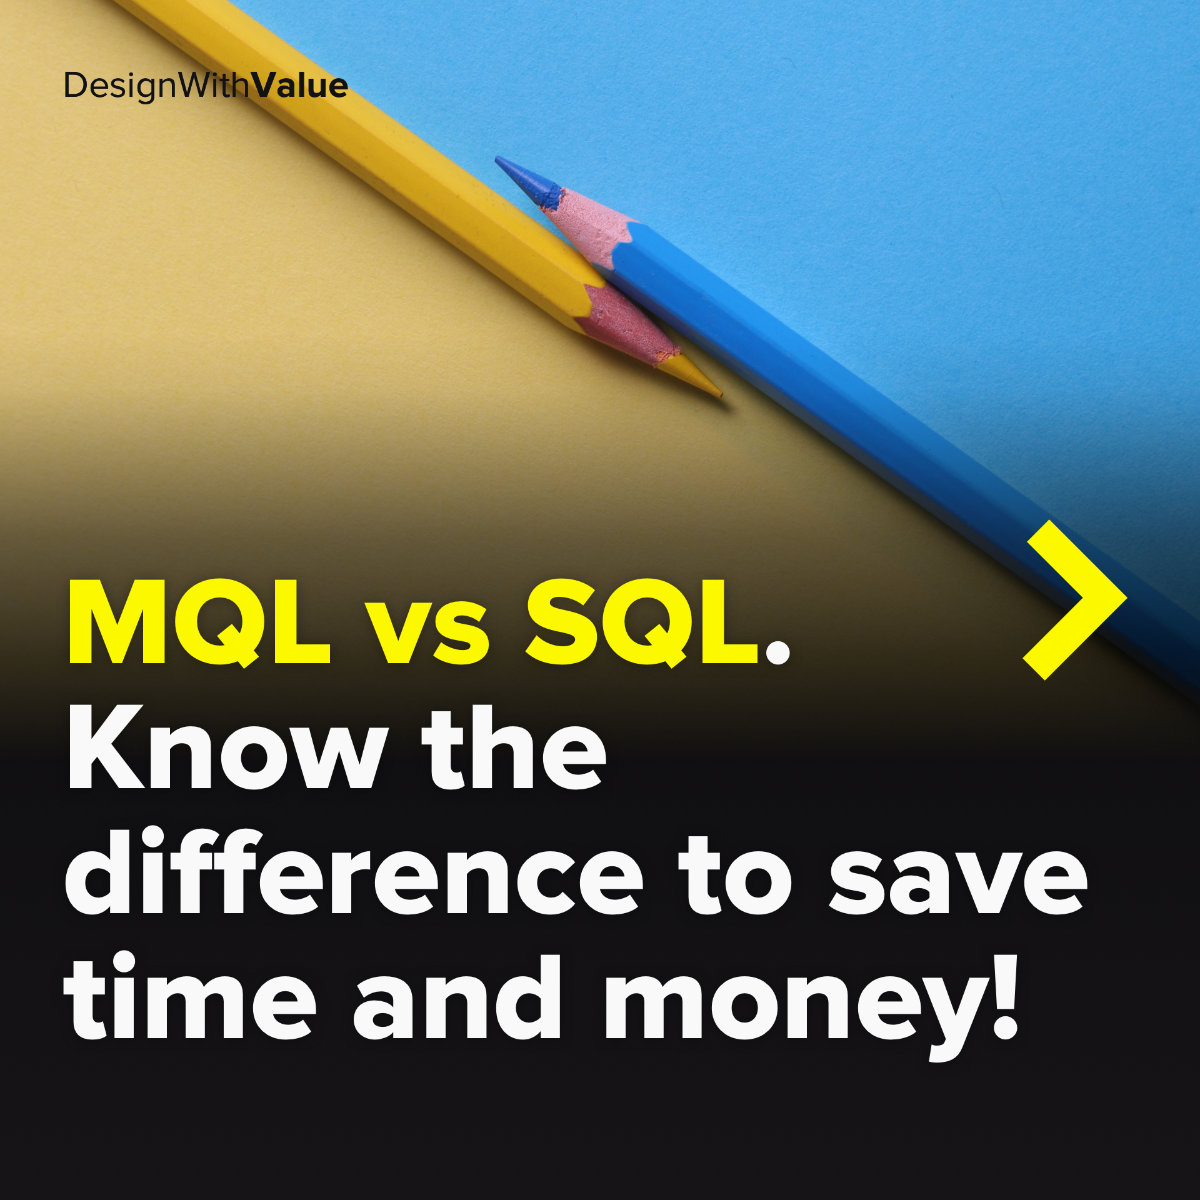 MQL vs SQL. Know the difference to save time and money